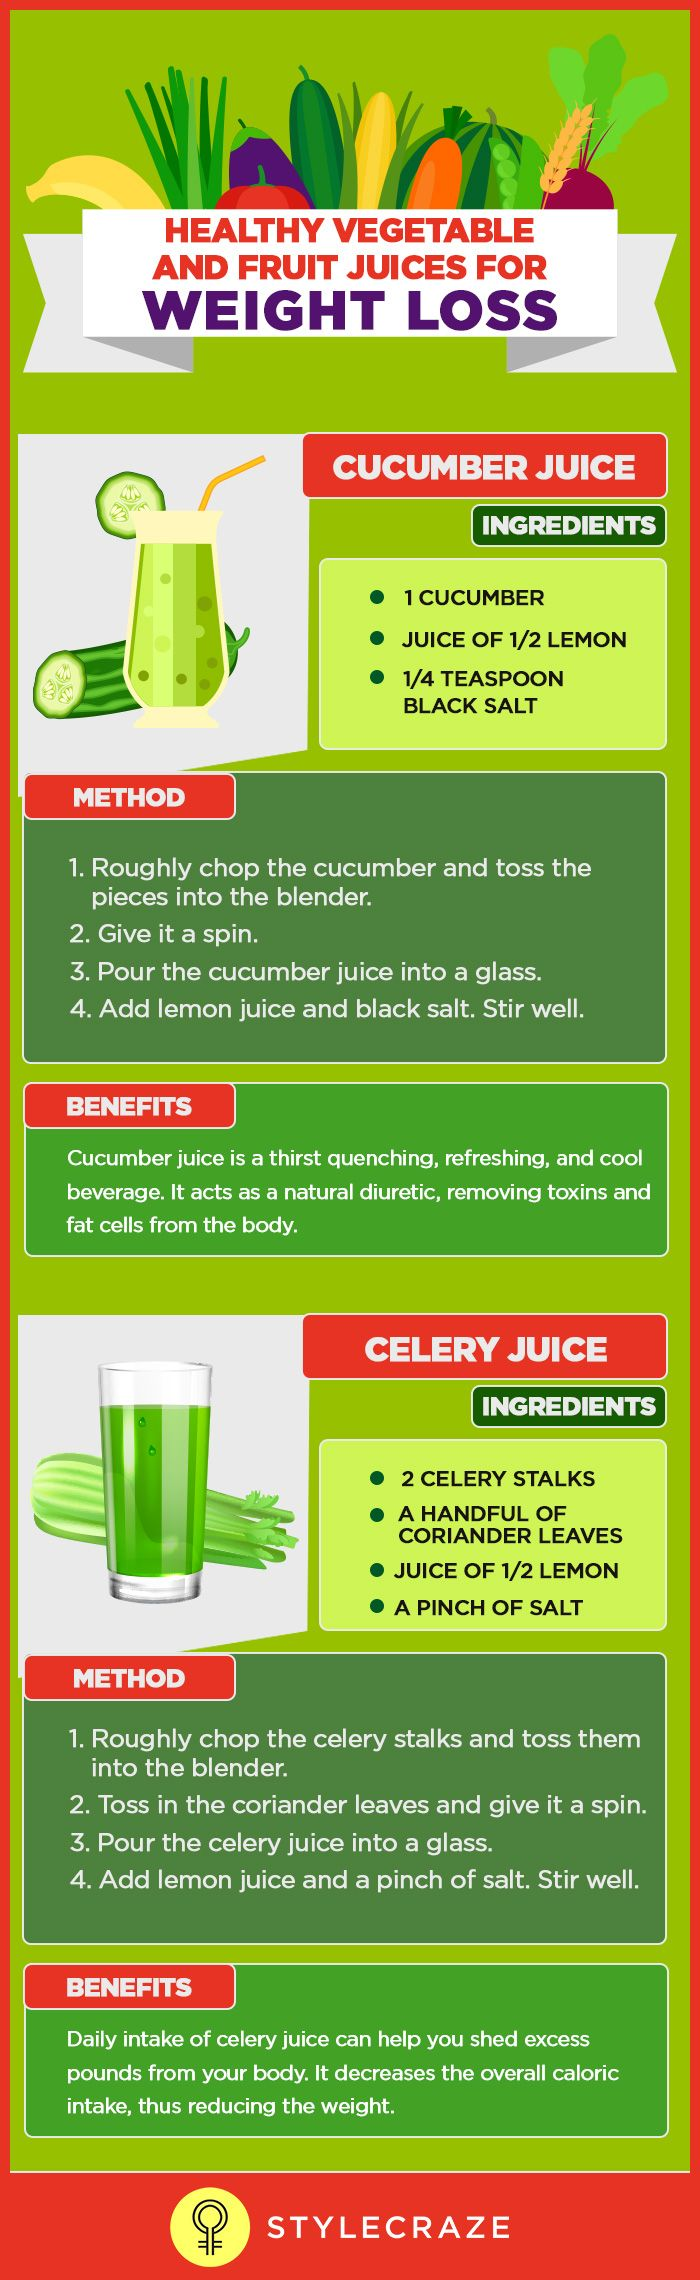 We all know that vegetables and fruits can aid weight loss. But what if you don't like eating fruits and vegetables? You may be surprised to know this, but fruit and vegetable juices are delicious, filling, and full of nutrition. In fact, you can drop two jeans sizes by substituting two meals per day with these listed 50 fruits and veggies juices.